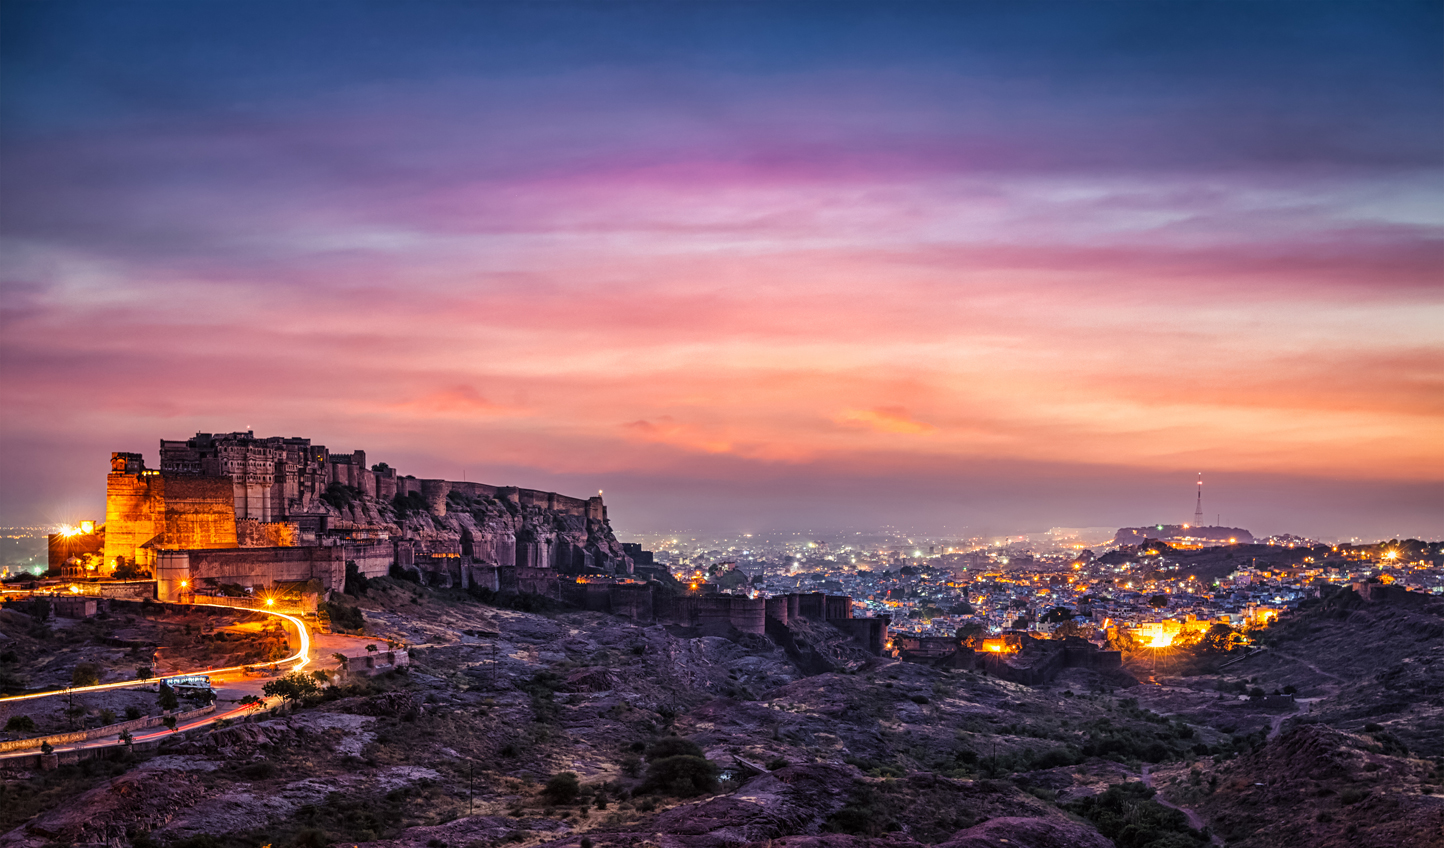 See the iconic Mehrangarh Fort lit up by twilight